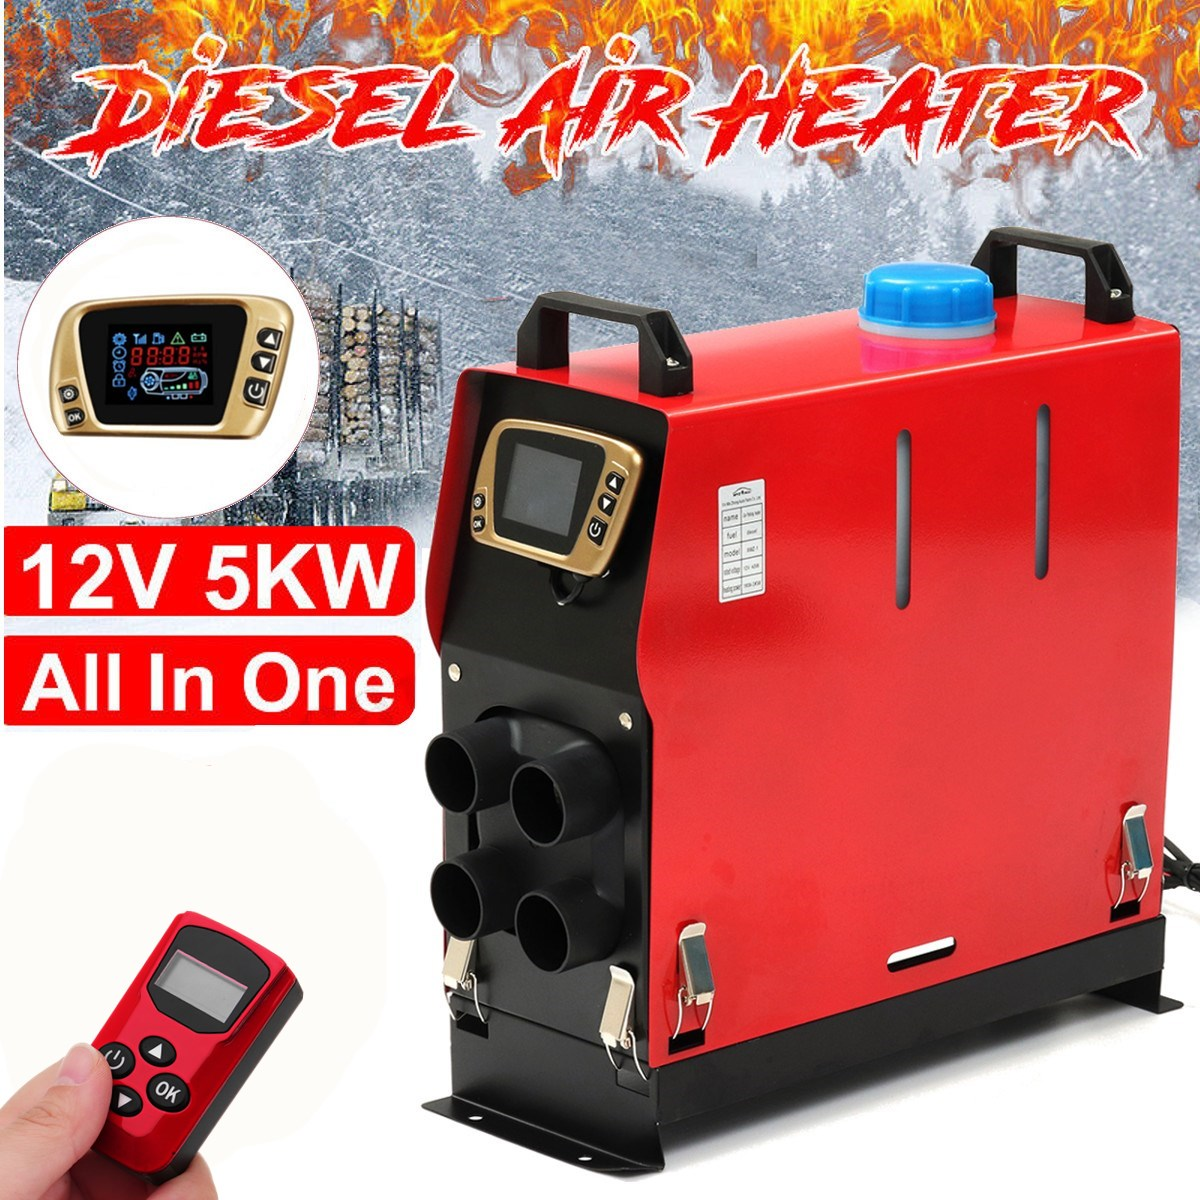 5KW 12V Detachable Diesel Air Heater All-in-One Fuel Air Parking Heater with Golden LCD Switch and English remote control for Truck Motor Boat Trailer